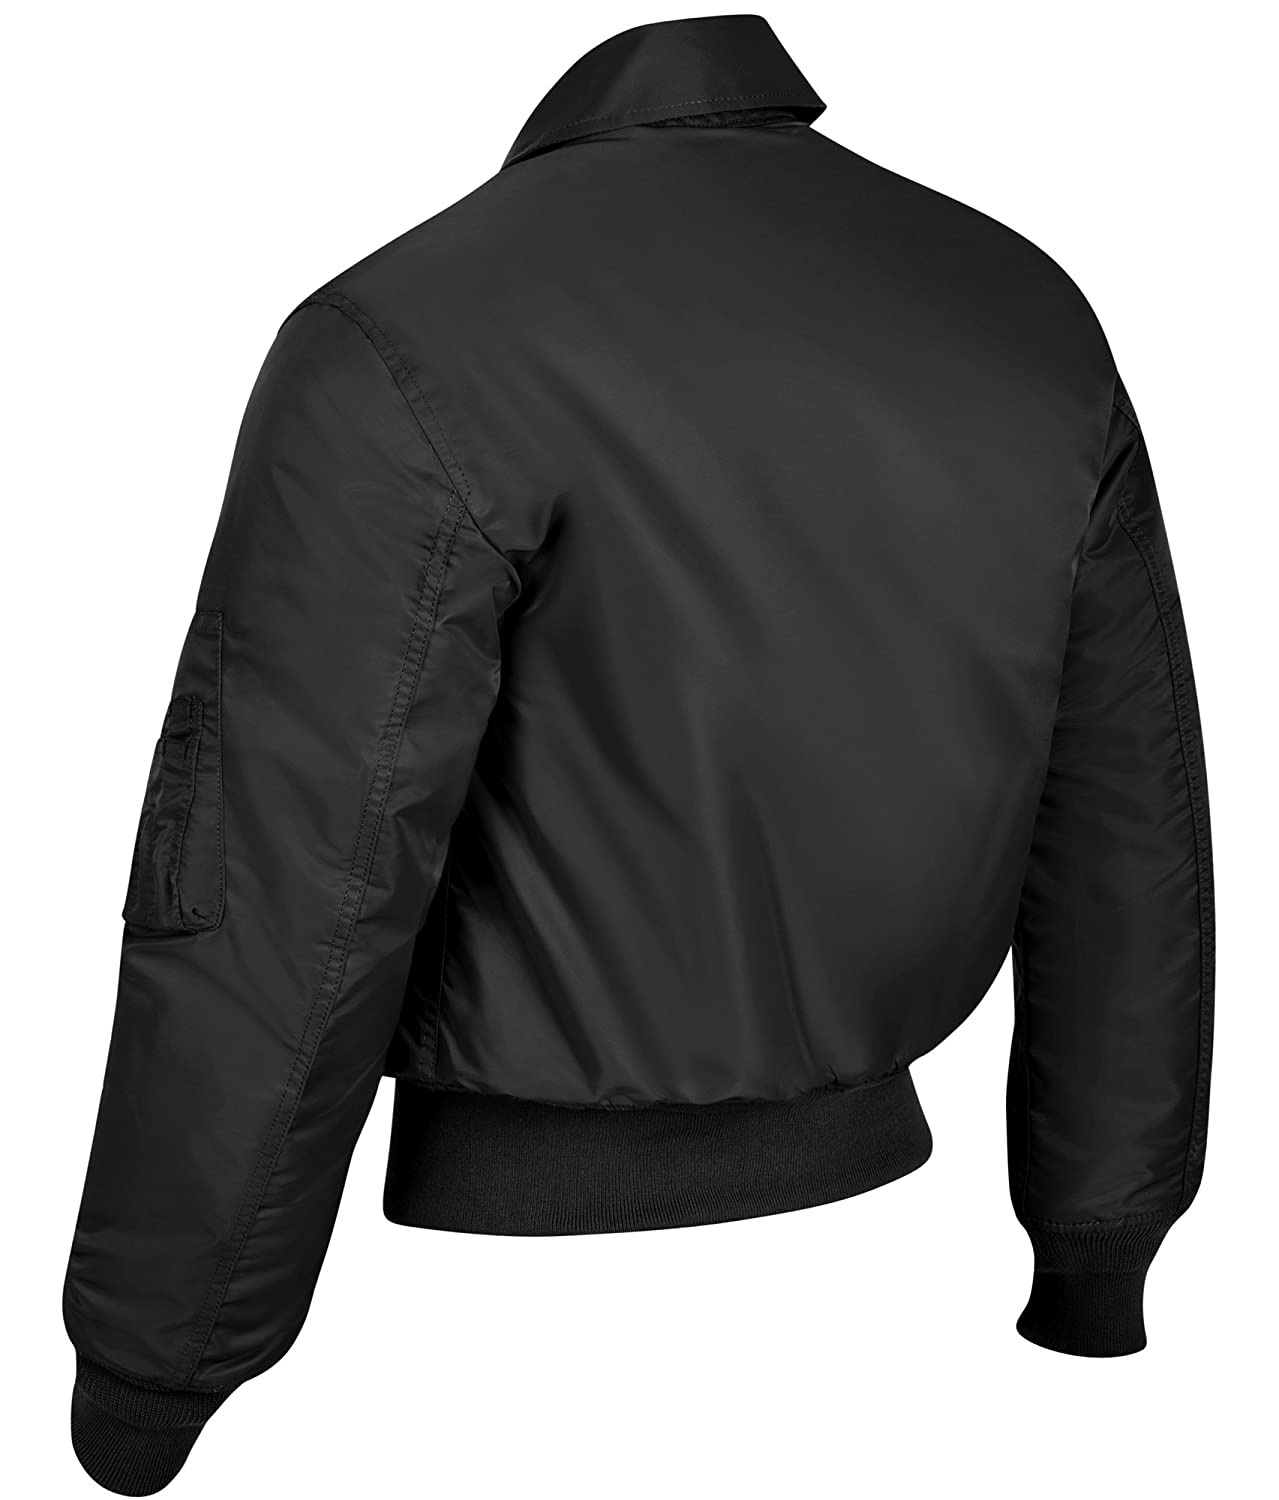 f8d03c39476 Amazon.com  Valley Apparel Made in USA Men s US Air Force CWU 45 P Flight  Jacket  Clothing